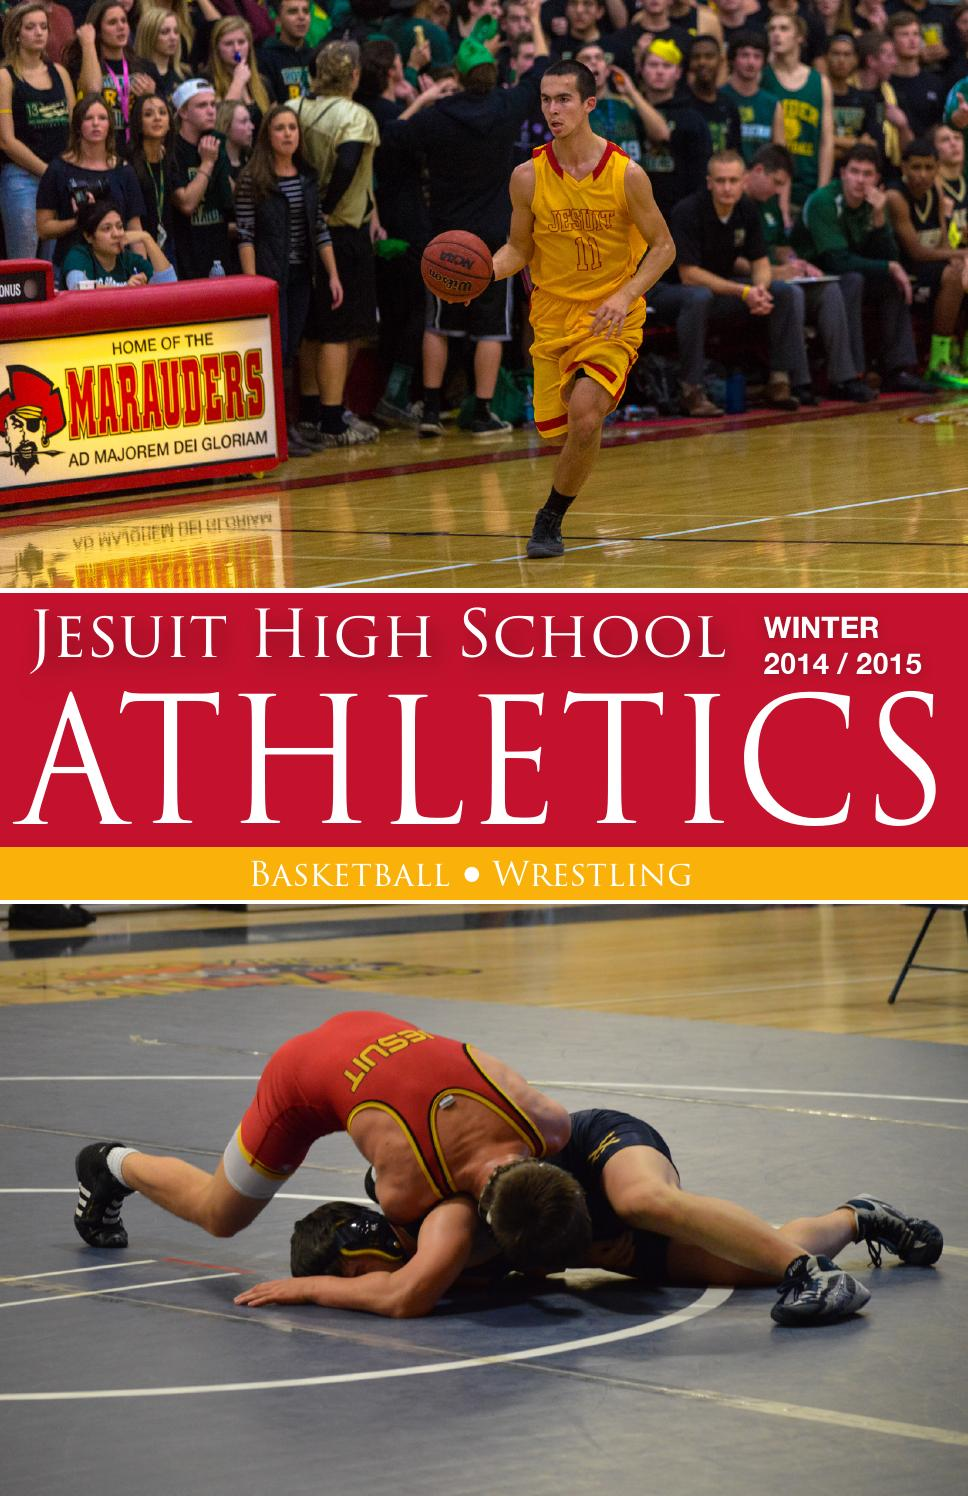 Would going to a Jesuit high school help get you into a Jesuit college?